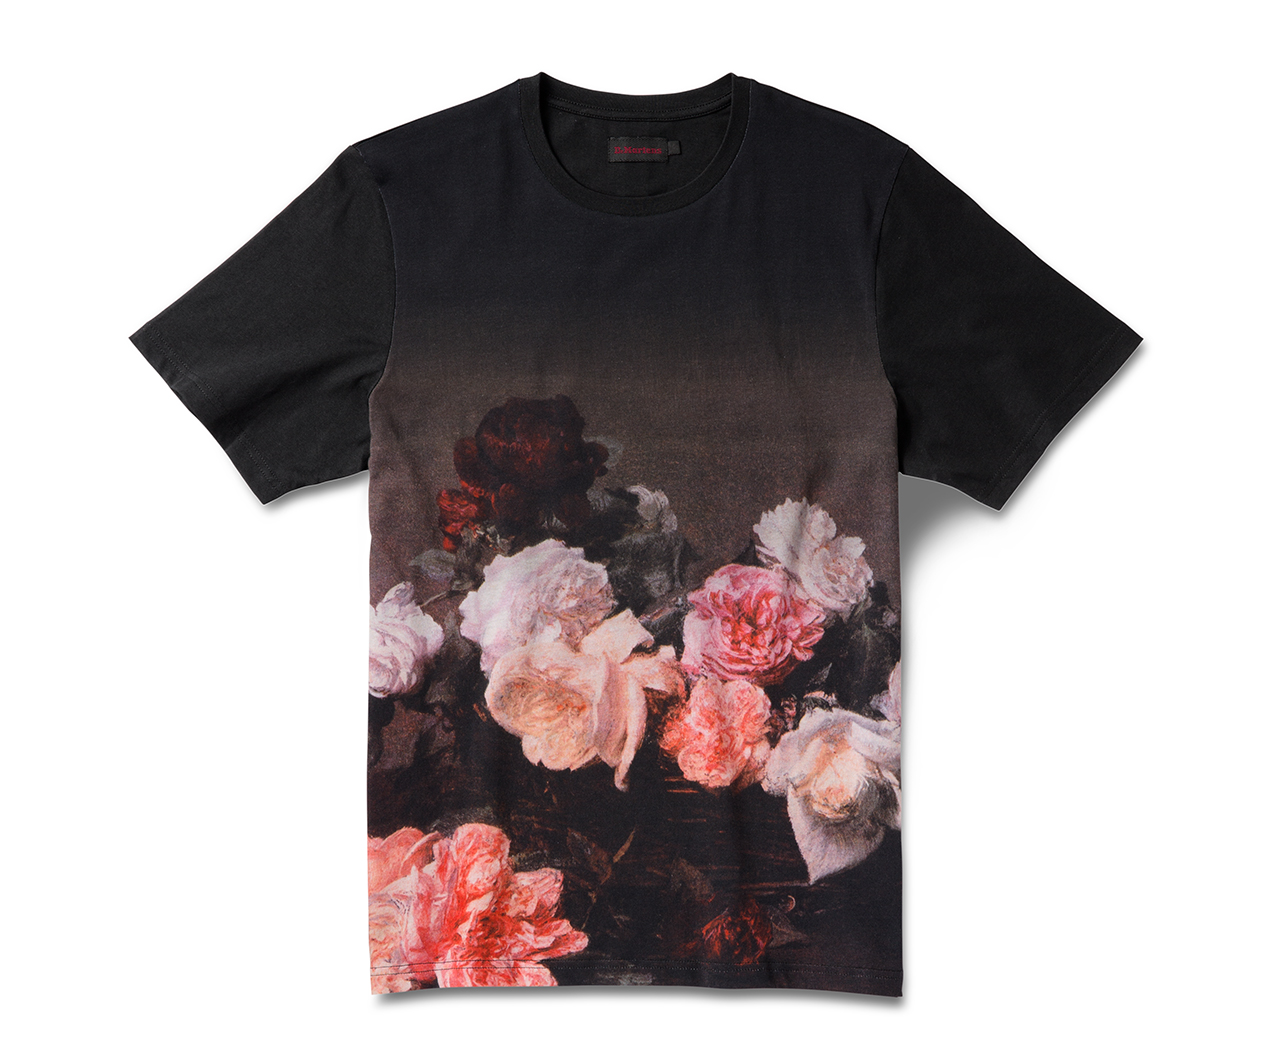 c88f9c978 POWER CORRUPTION LINES T SHIRT | Joy Divison + New Order | Dr ...